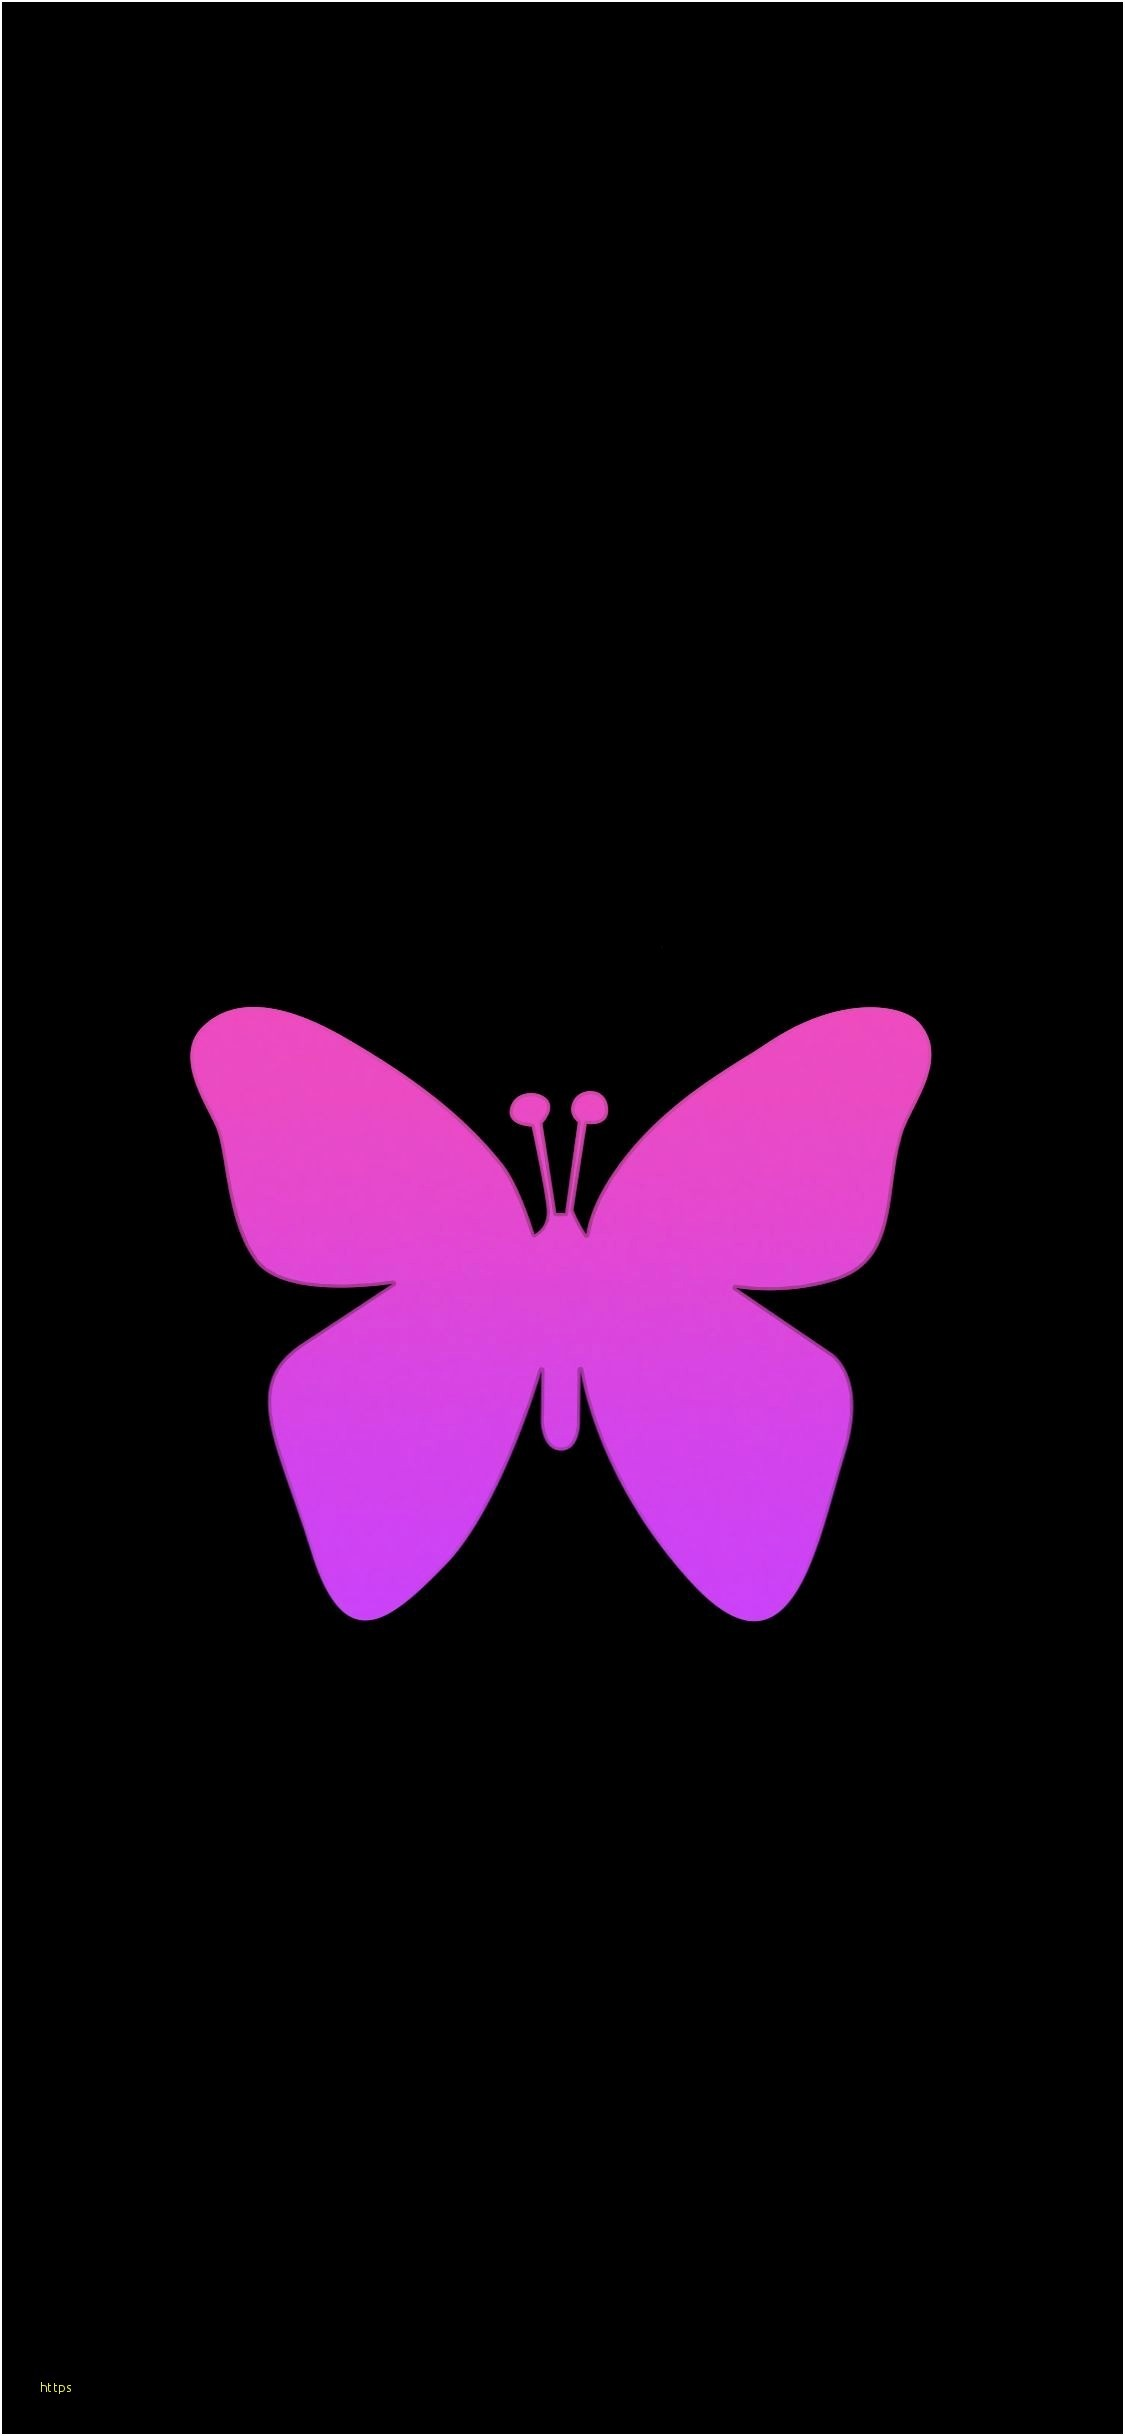 1125x2436 - Pretty Butterfly Backgrounds 33